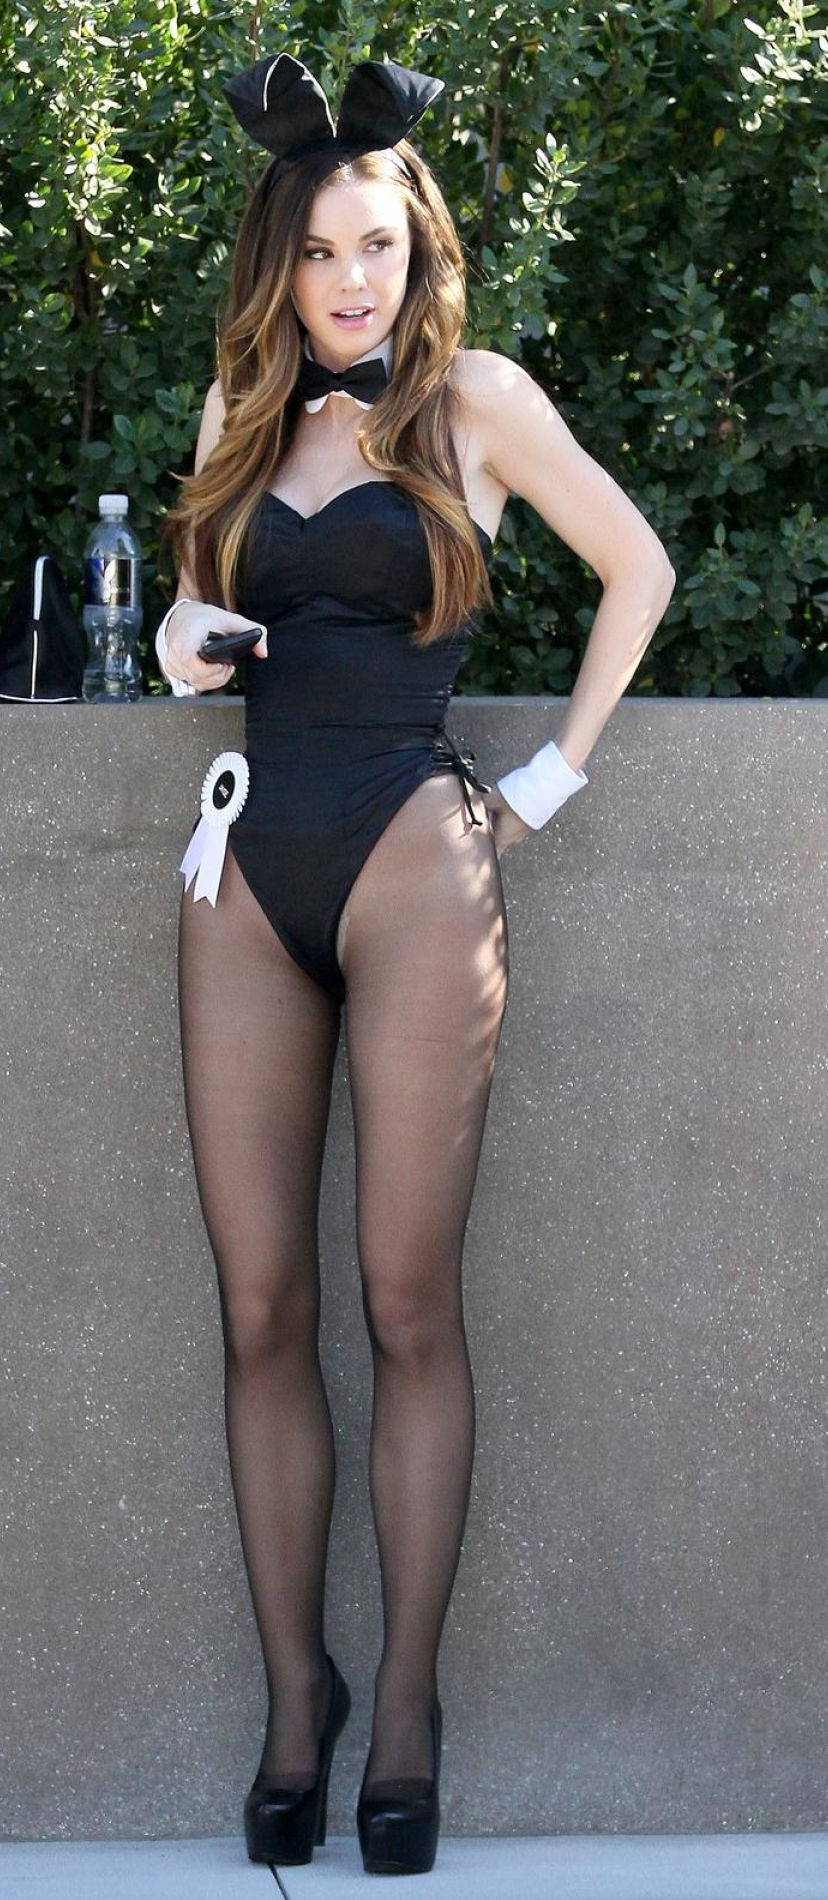 Without strong Young girls wearing nude pantyhose the western